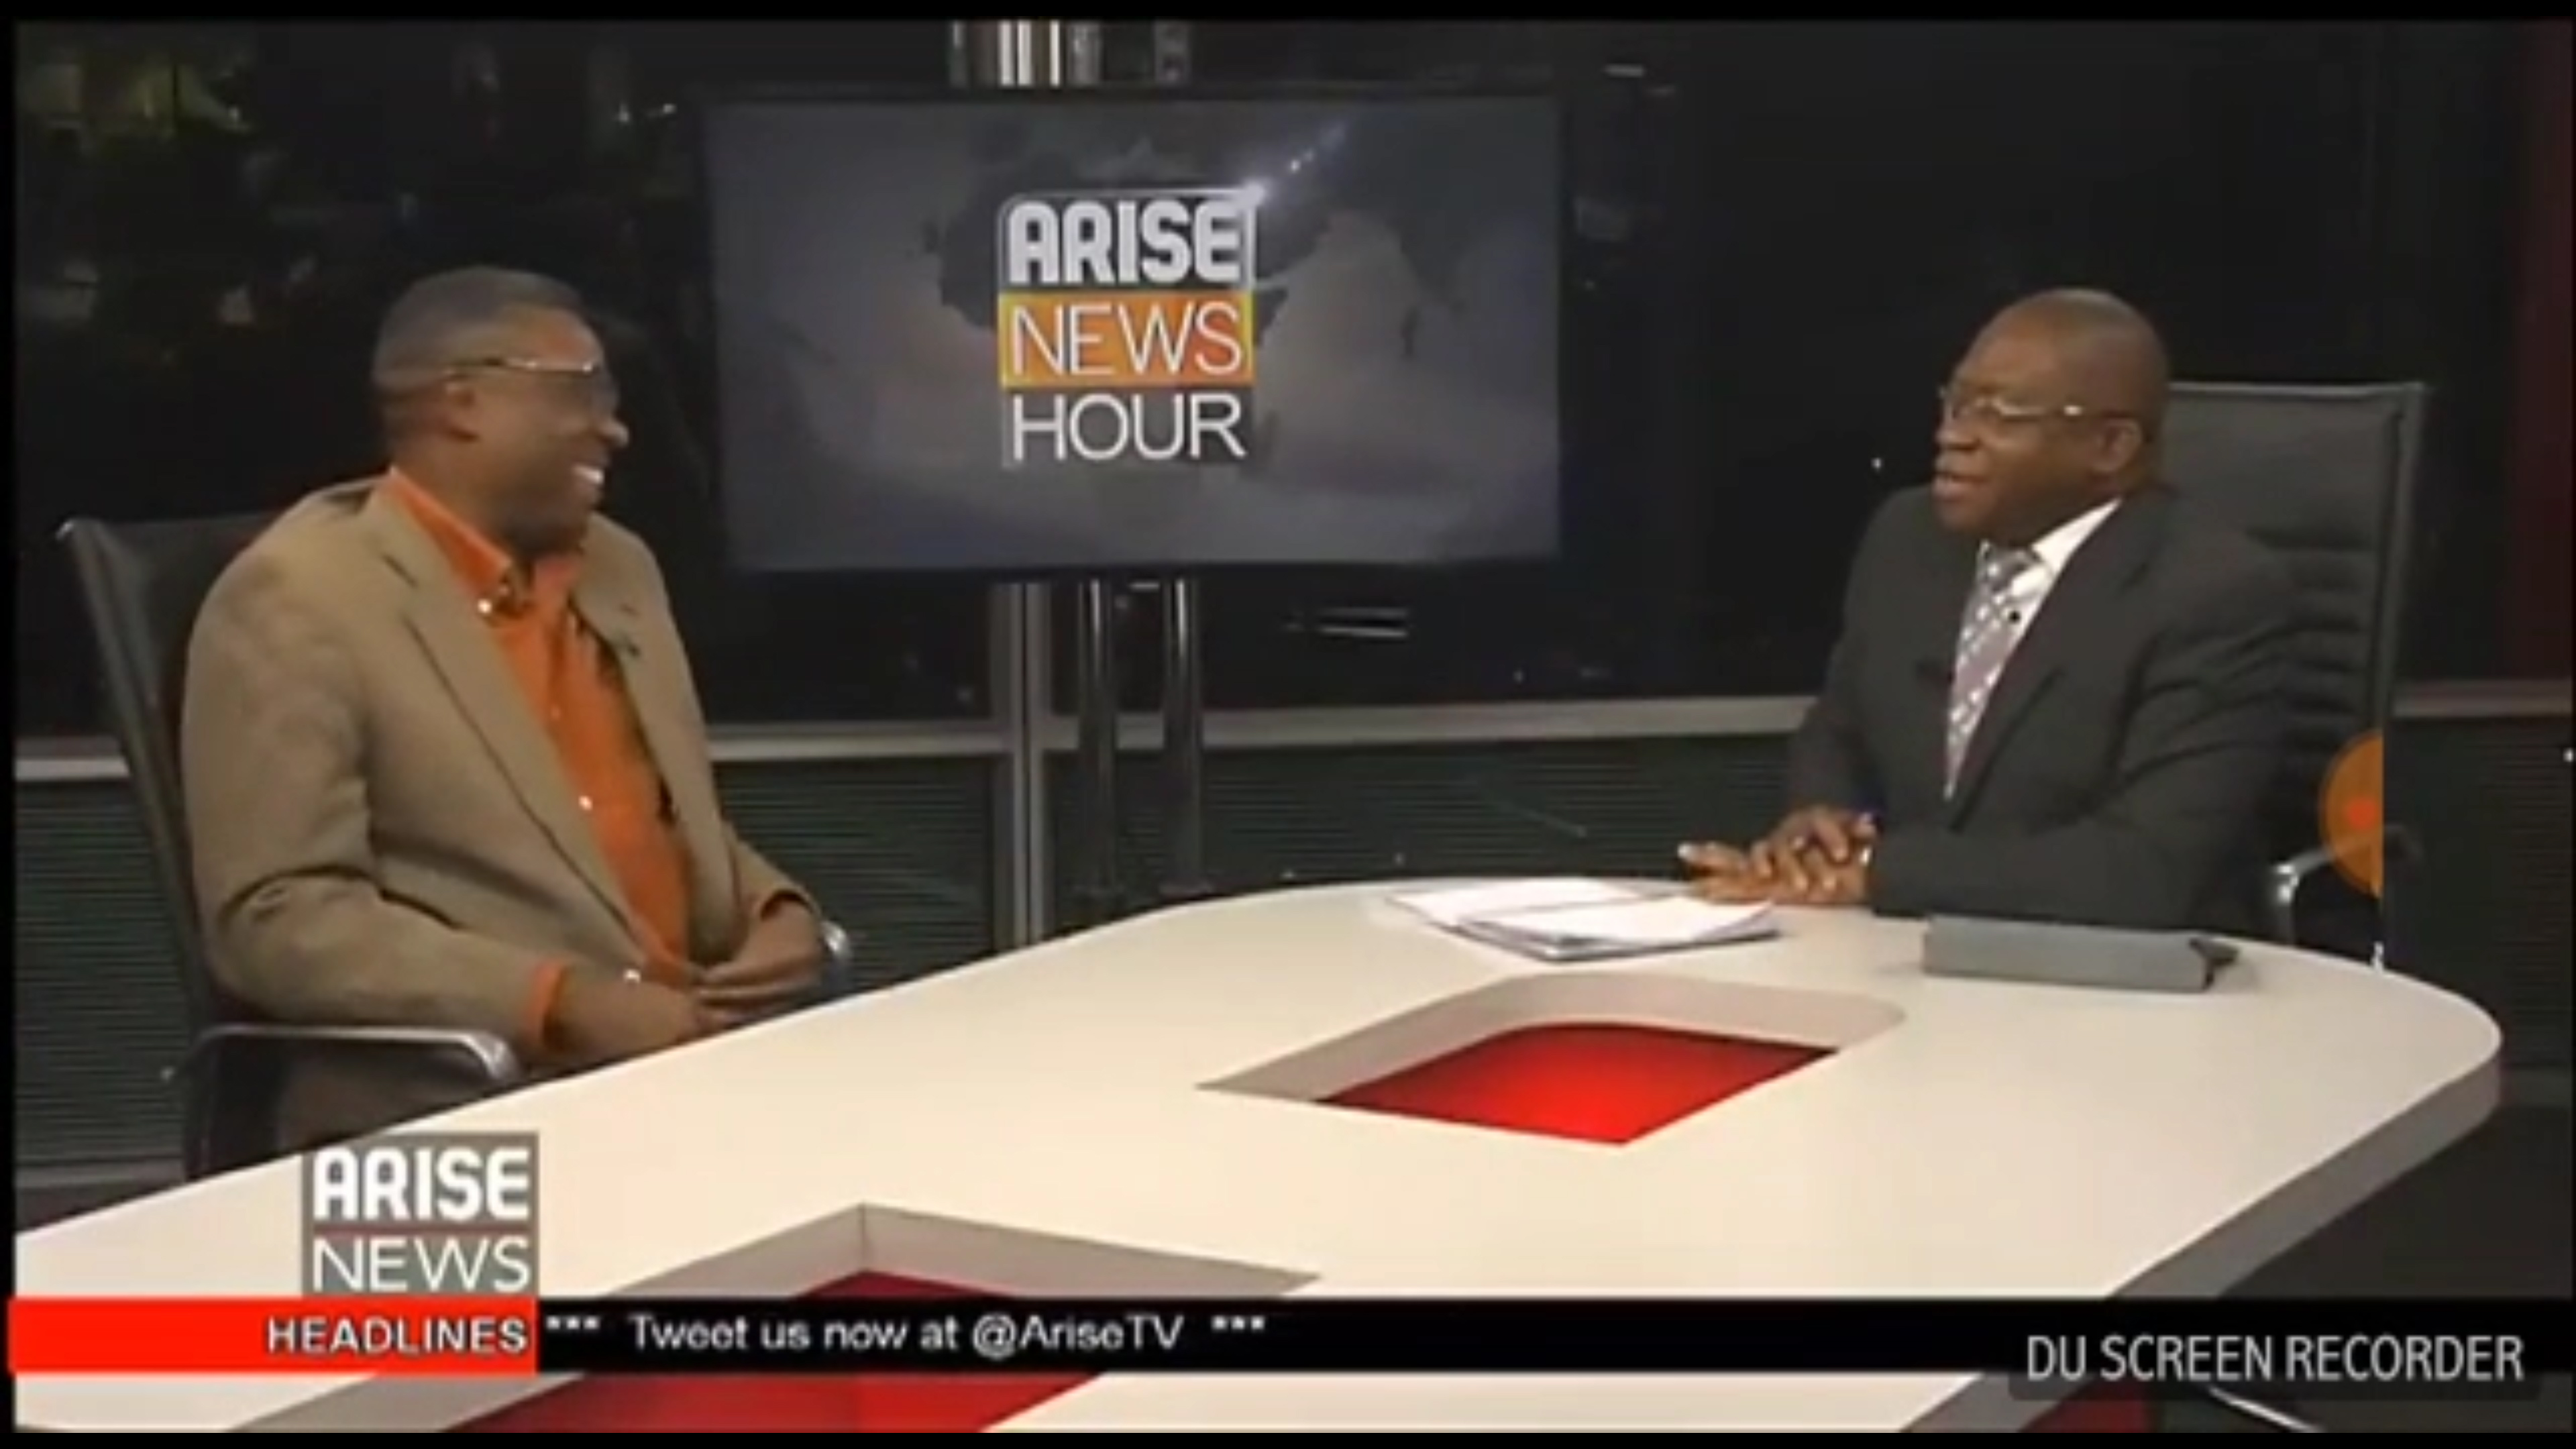 Chuba Obi at Arise TV Studios